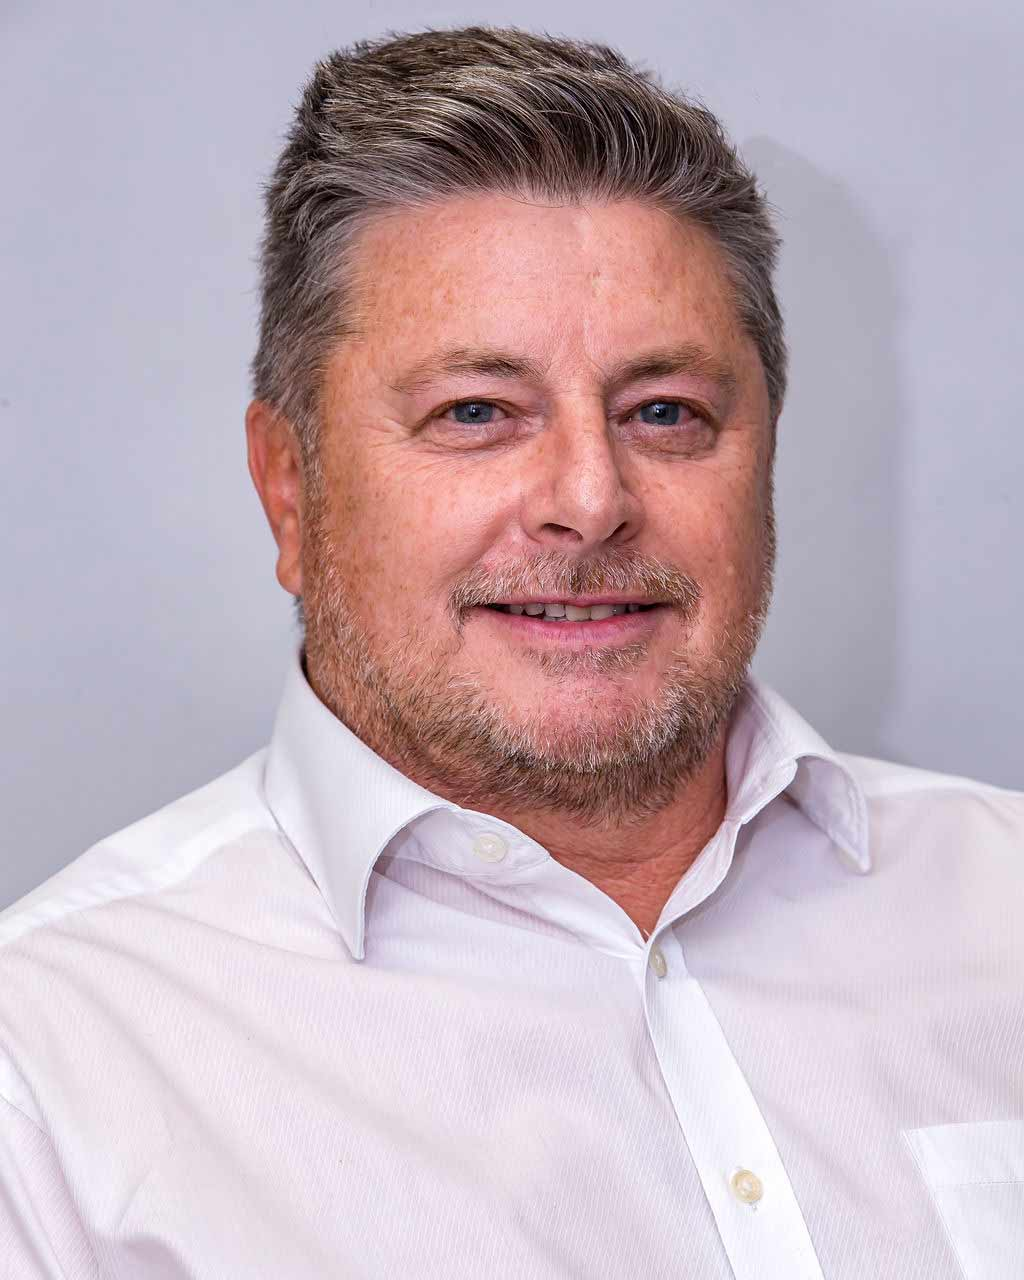 Managing Director - Kevin Peart